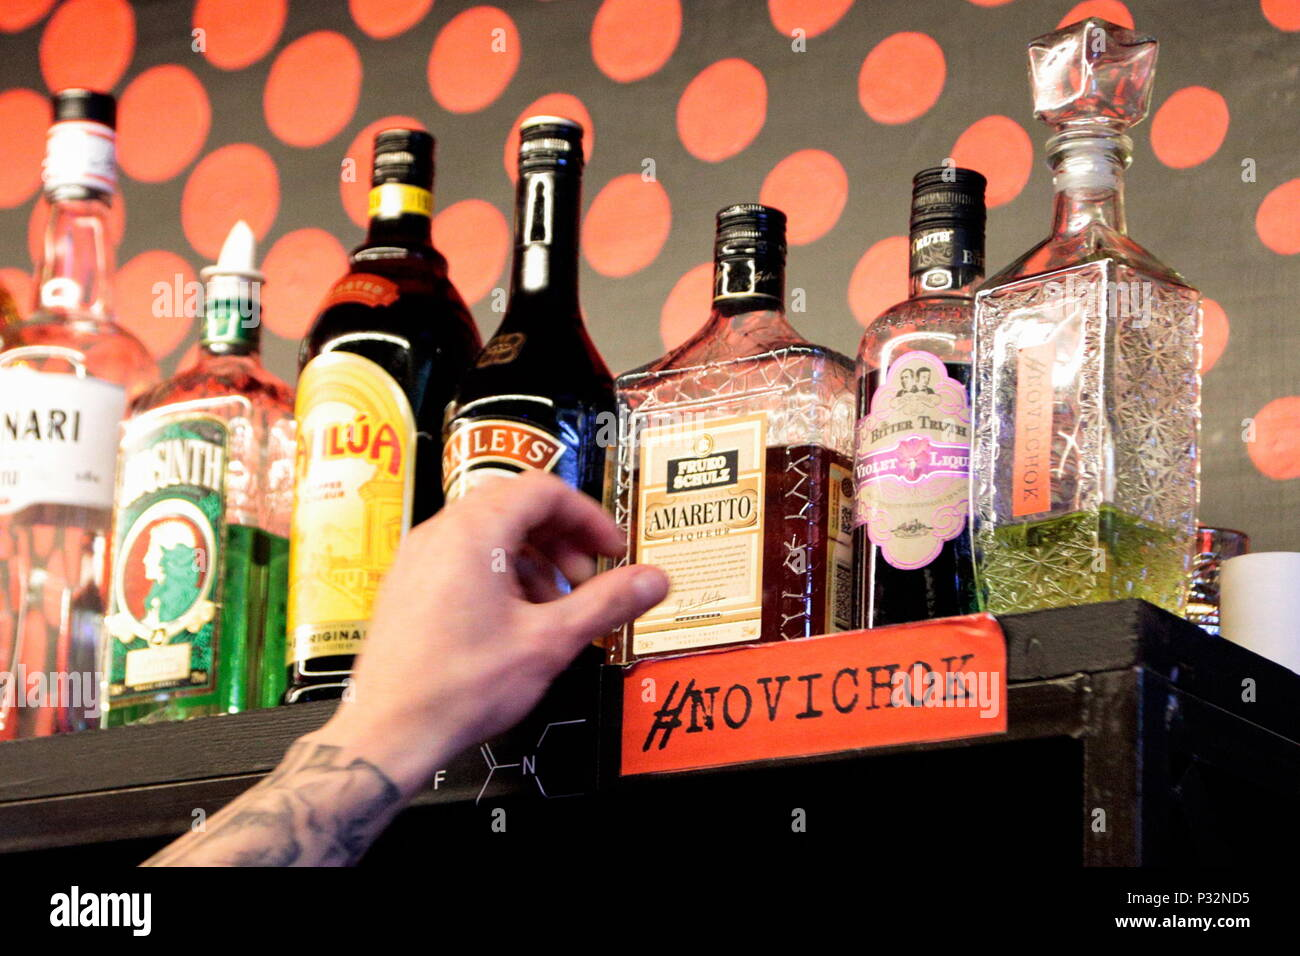 Volgograd, Russia. 16th June, 2018. VOLGOGRAD, RUSSIA - JUNE 16, 2018: Novichok, an alcoholic cocktail offered in the Gryadushka bar in Volgograd, Russia, and titled by analogy with the Novichok-7 military nerve agent. Dmitry Rogulin/TASS Credit: ITAR-TASS News Agency/Alamy Live News - Stock Image